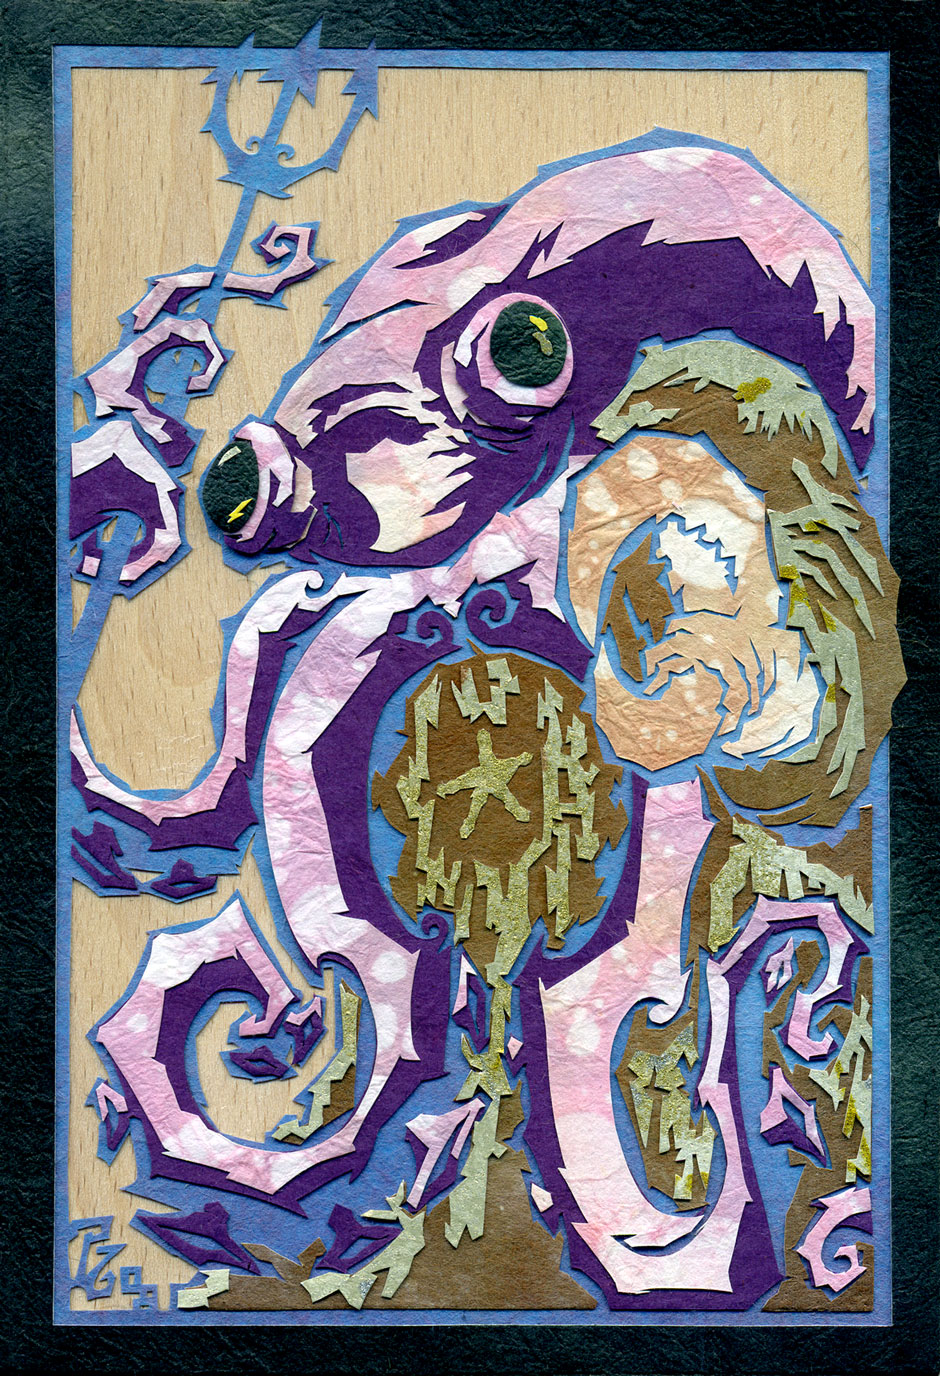 ⊛  Flailing Purple Tentacles of Beastie Destruction! ⊛  cut paper + washi + chiyogami / wood   ⊛  6 x 4 in • 150 x 100 mm